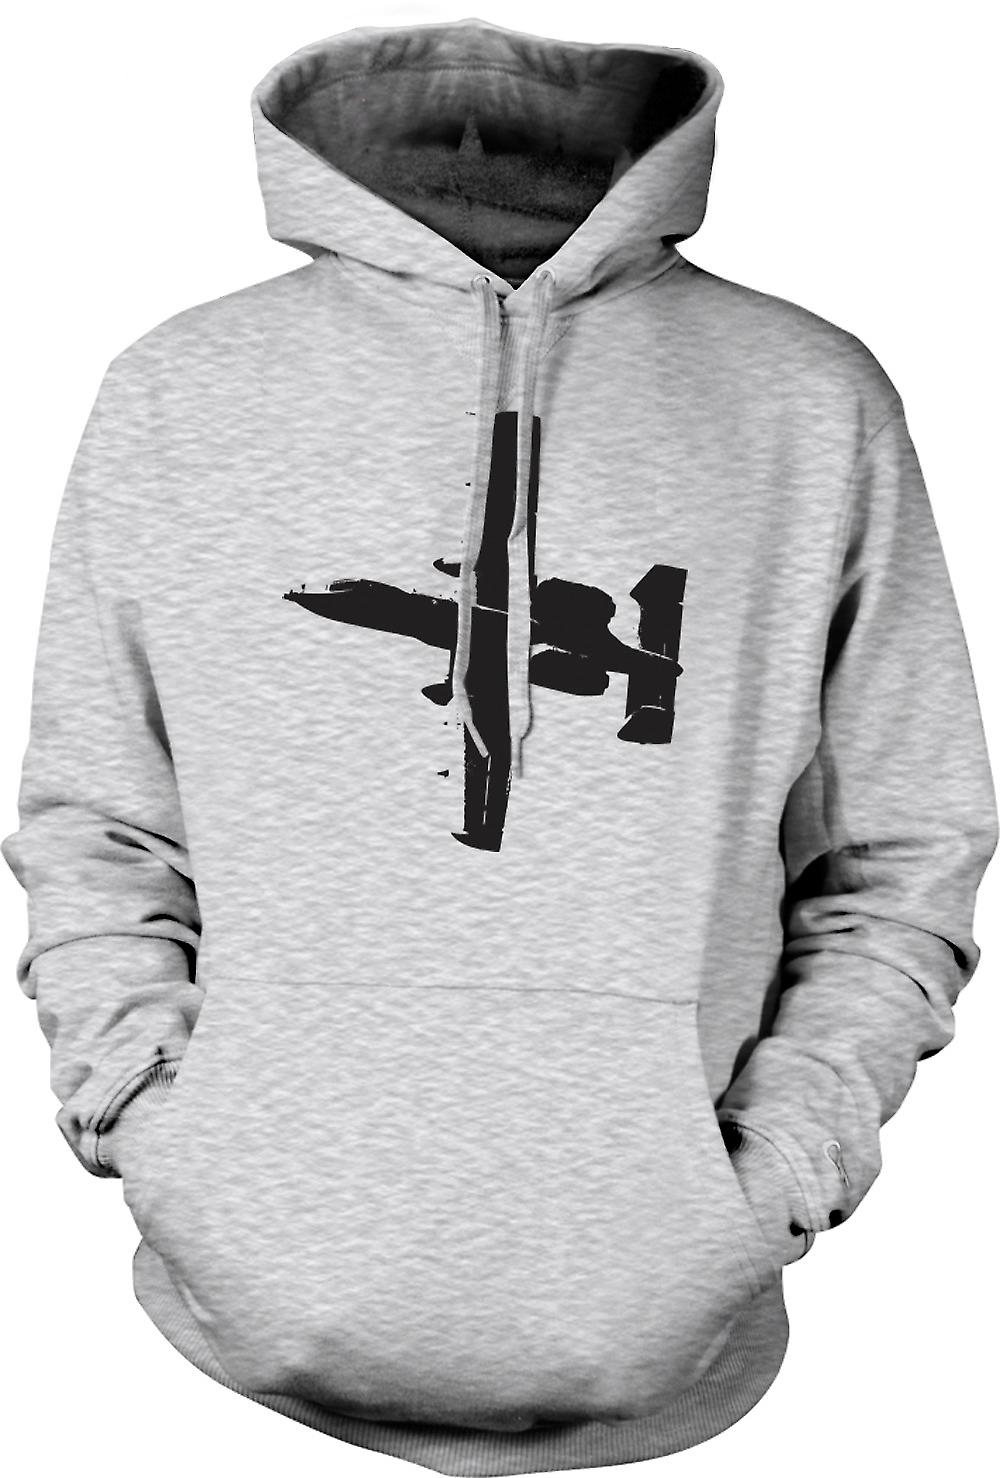 Mens Hoodie - A10 Thunderbolt réservoir Buster - Super Fighter